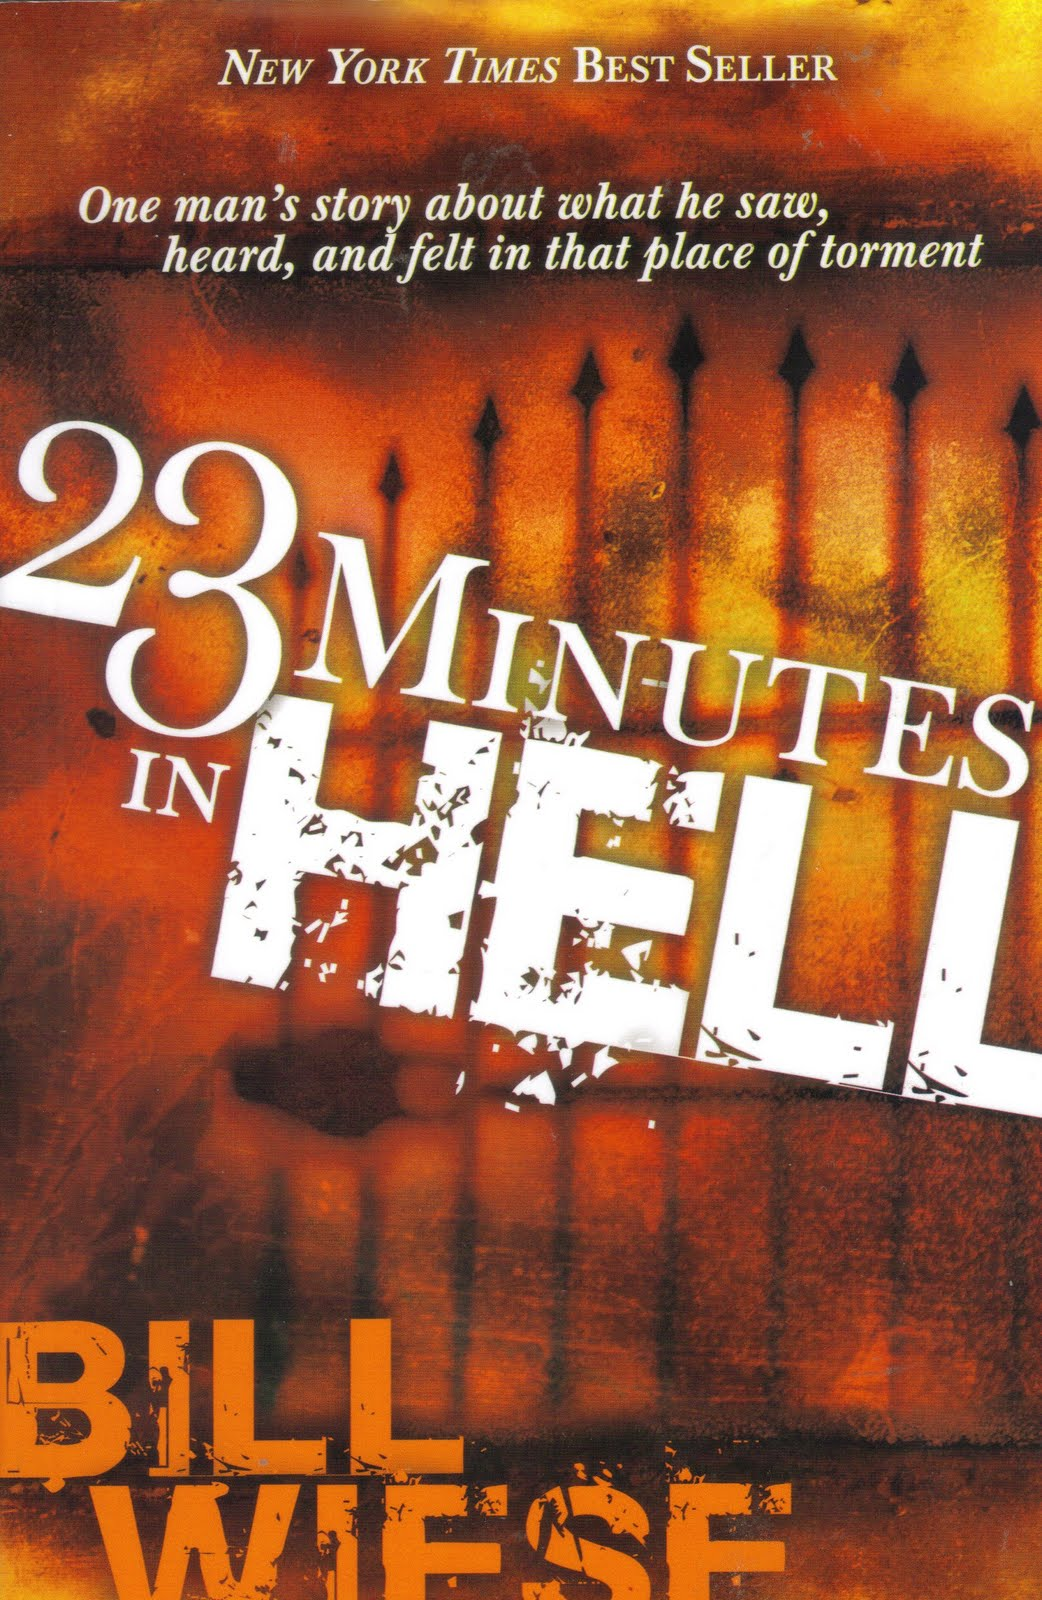 8 minutes of hell jizznation 9